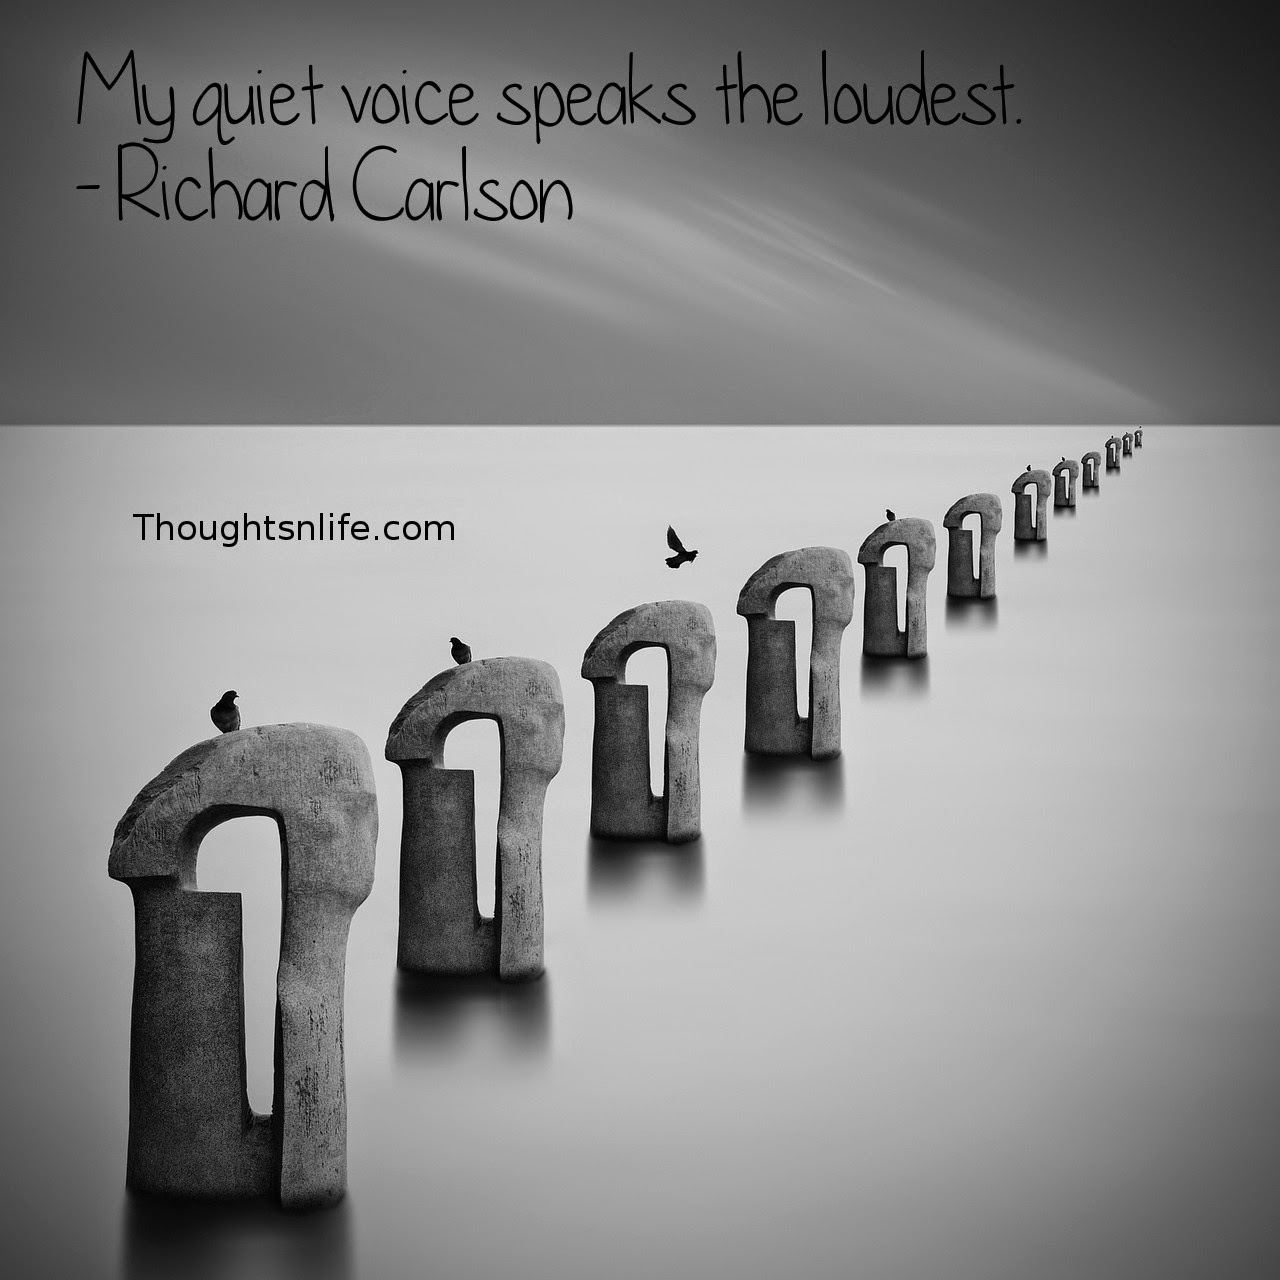 Thoughtsnlife.com: My quiet voice speaks the loudest. - Richard Carlson